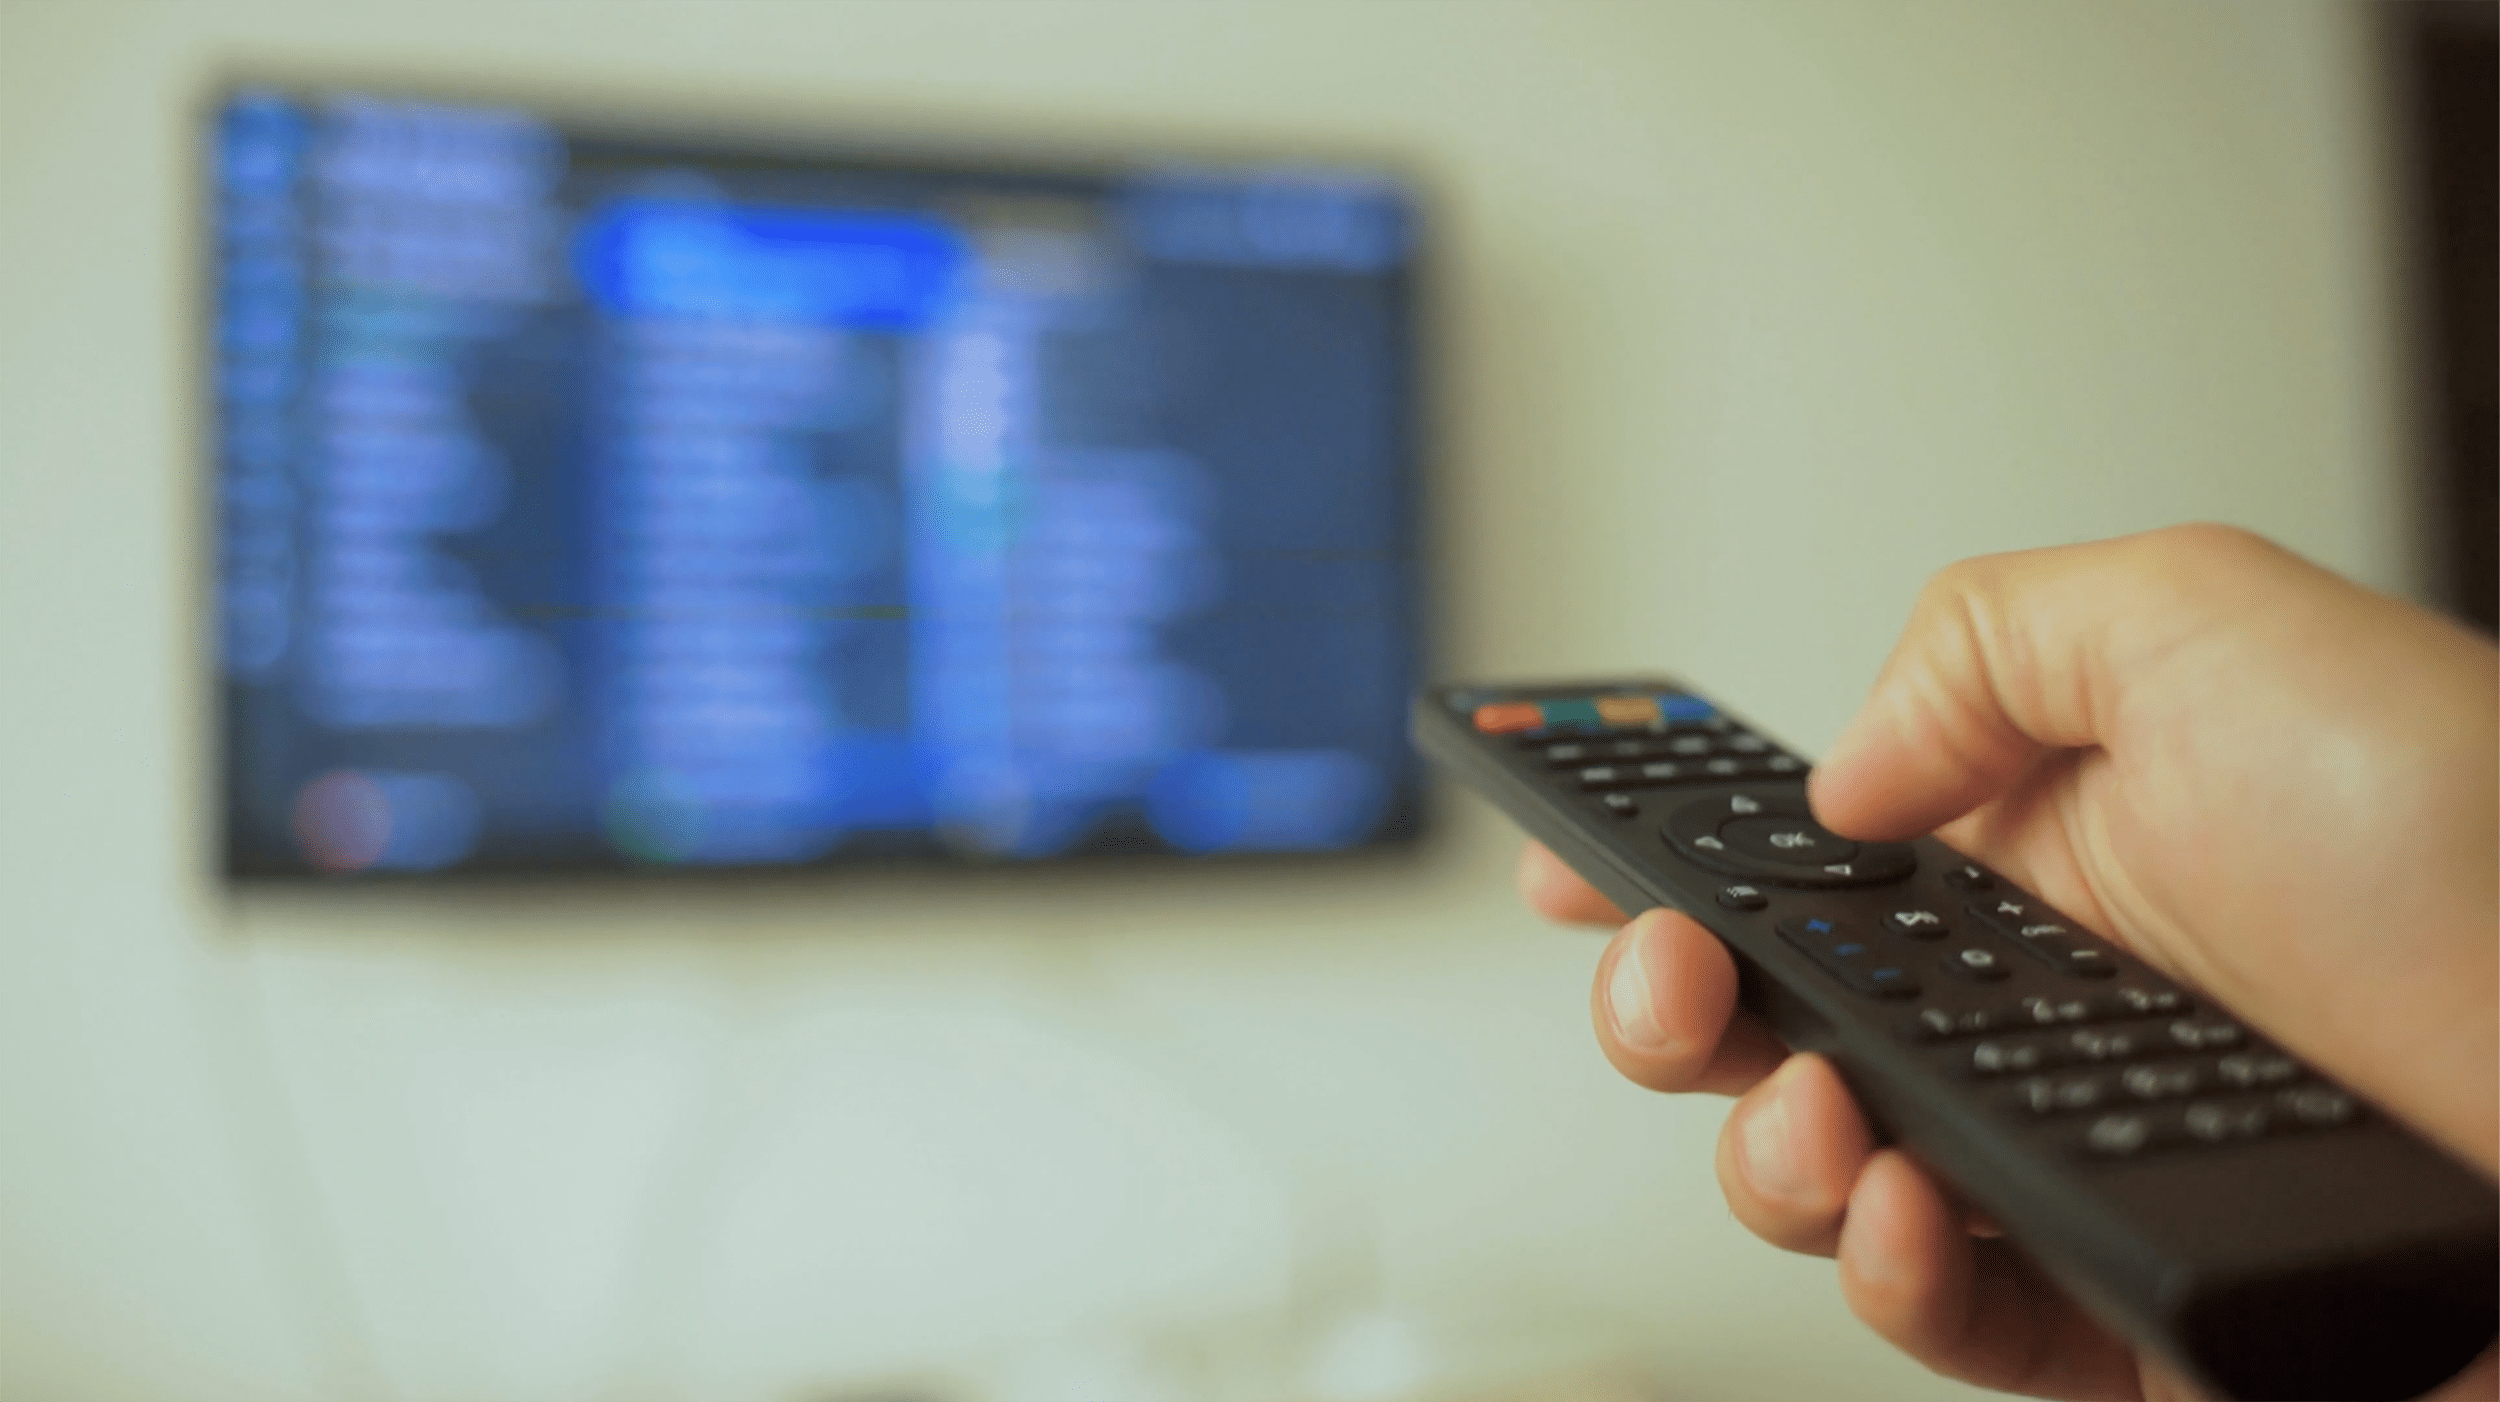 Premium movie, network and cable channels